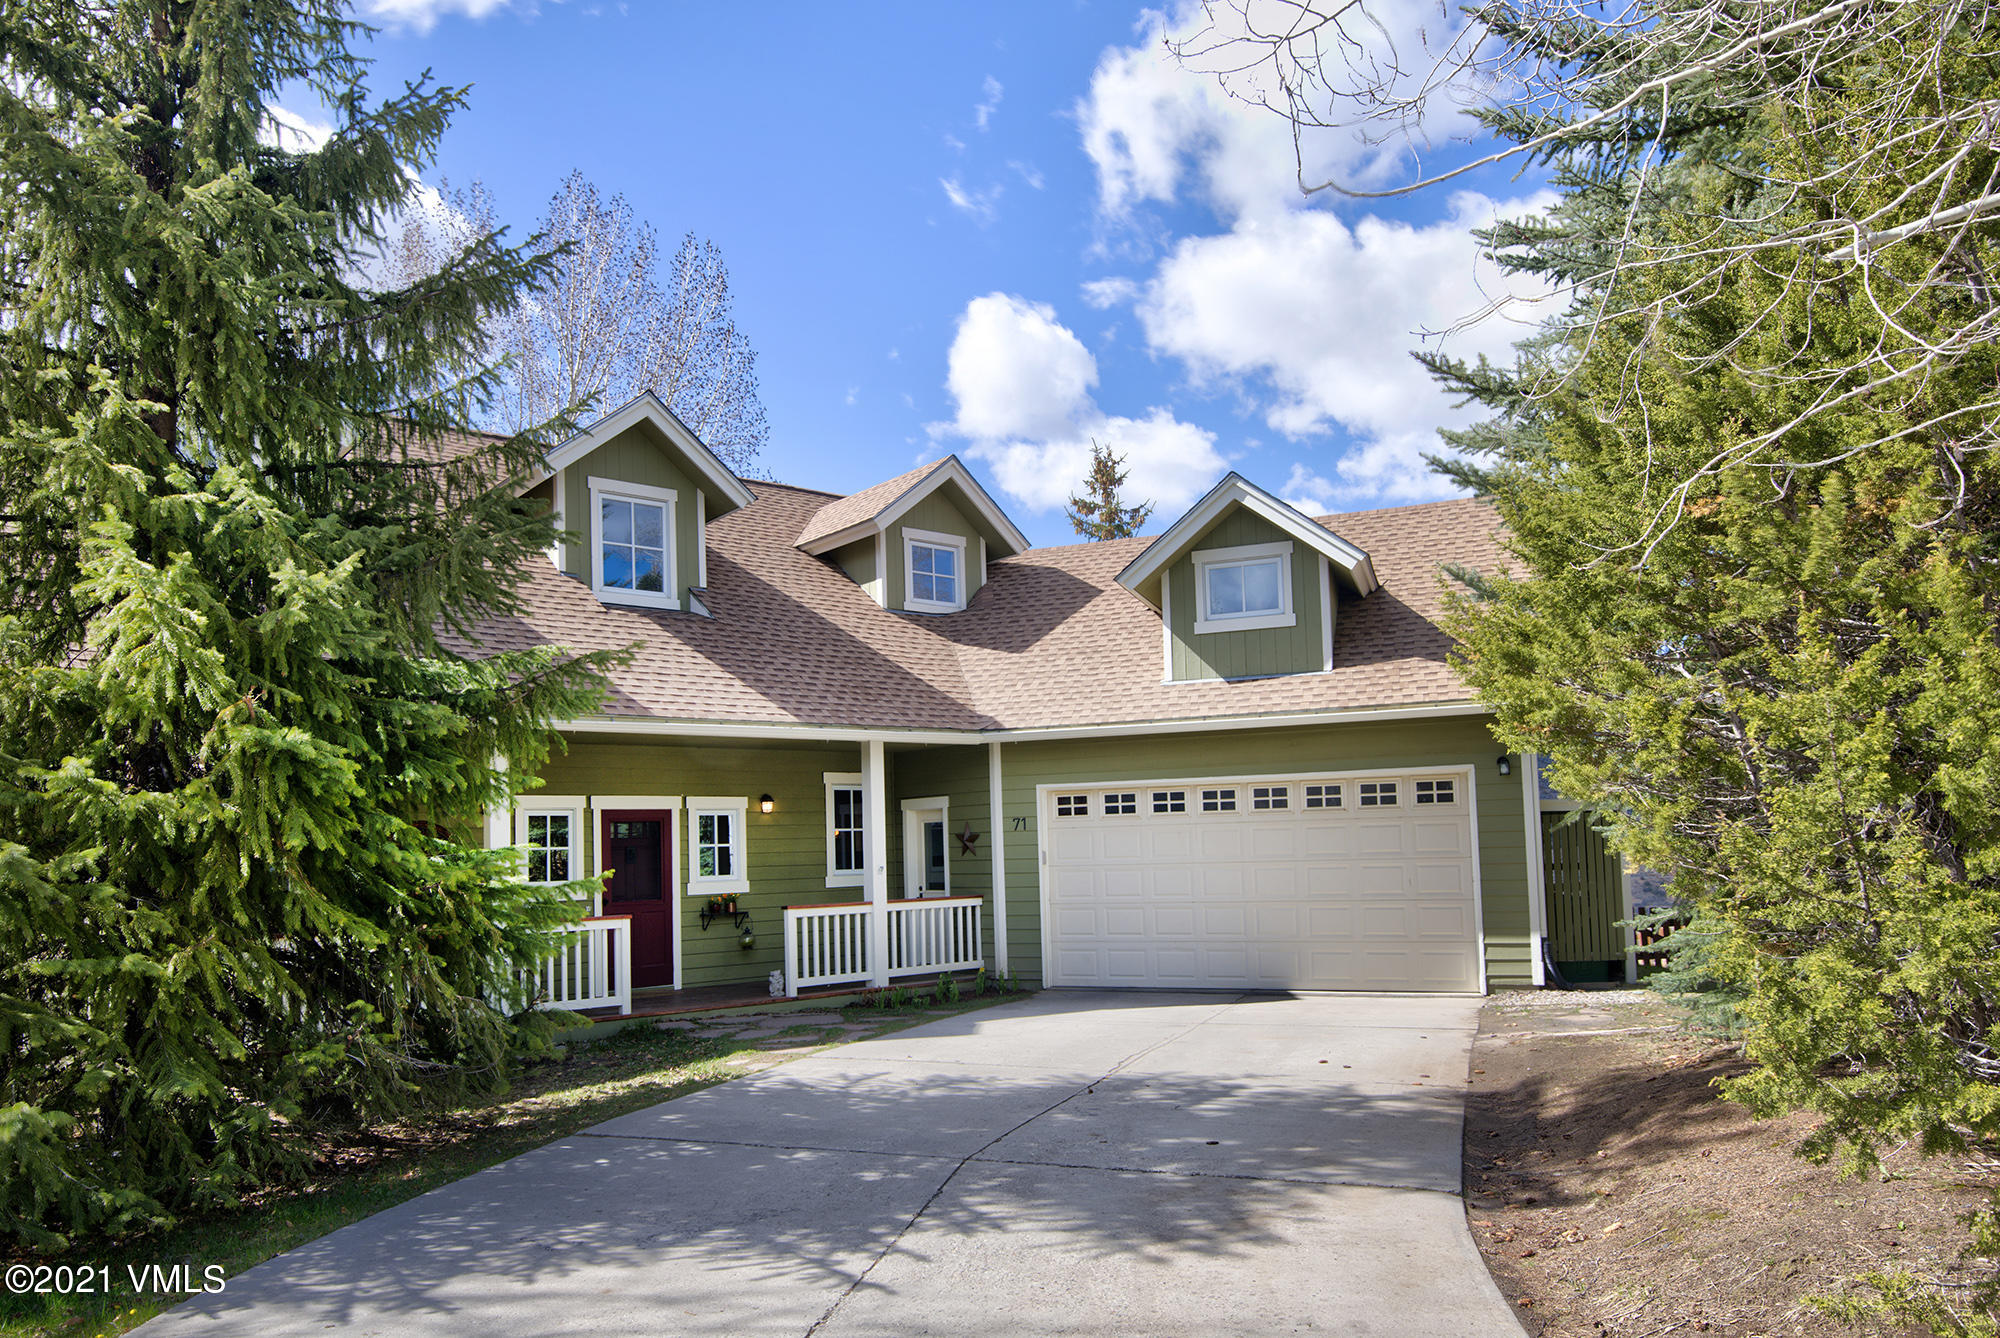 Upgraded single family home ideally located at the end of a secluded cul de sac. Tons of natural light and expansive views to enjoy from the open main floor and spacious private back deck.  This home offers 4 bedrooms, 3 baths, an oversized 2 car garage, a large fenced in back yard plus lots of potential in a 1305 SF unfinished basement. Upgrades include remodeled baths, new paint and carpet throughout, new roof, updated kitchen, new stone fire place and much more. Enjoy the great bonus room off one of the upstairs bedrooms which can be an extra hang out or flex space.  Just a short walk to the Homestead Court Club, which offers a fitness center, pool, hot tub and tennis courts. Close to all the shops and restaurants in downtown Edwards and outdoor activities in the Homestead open space.